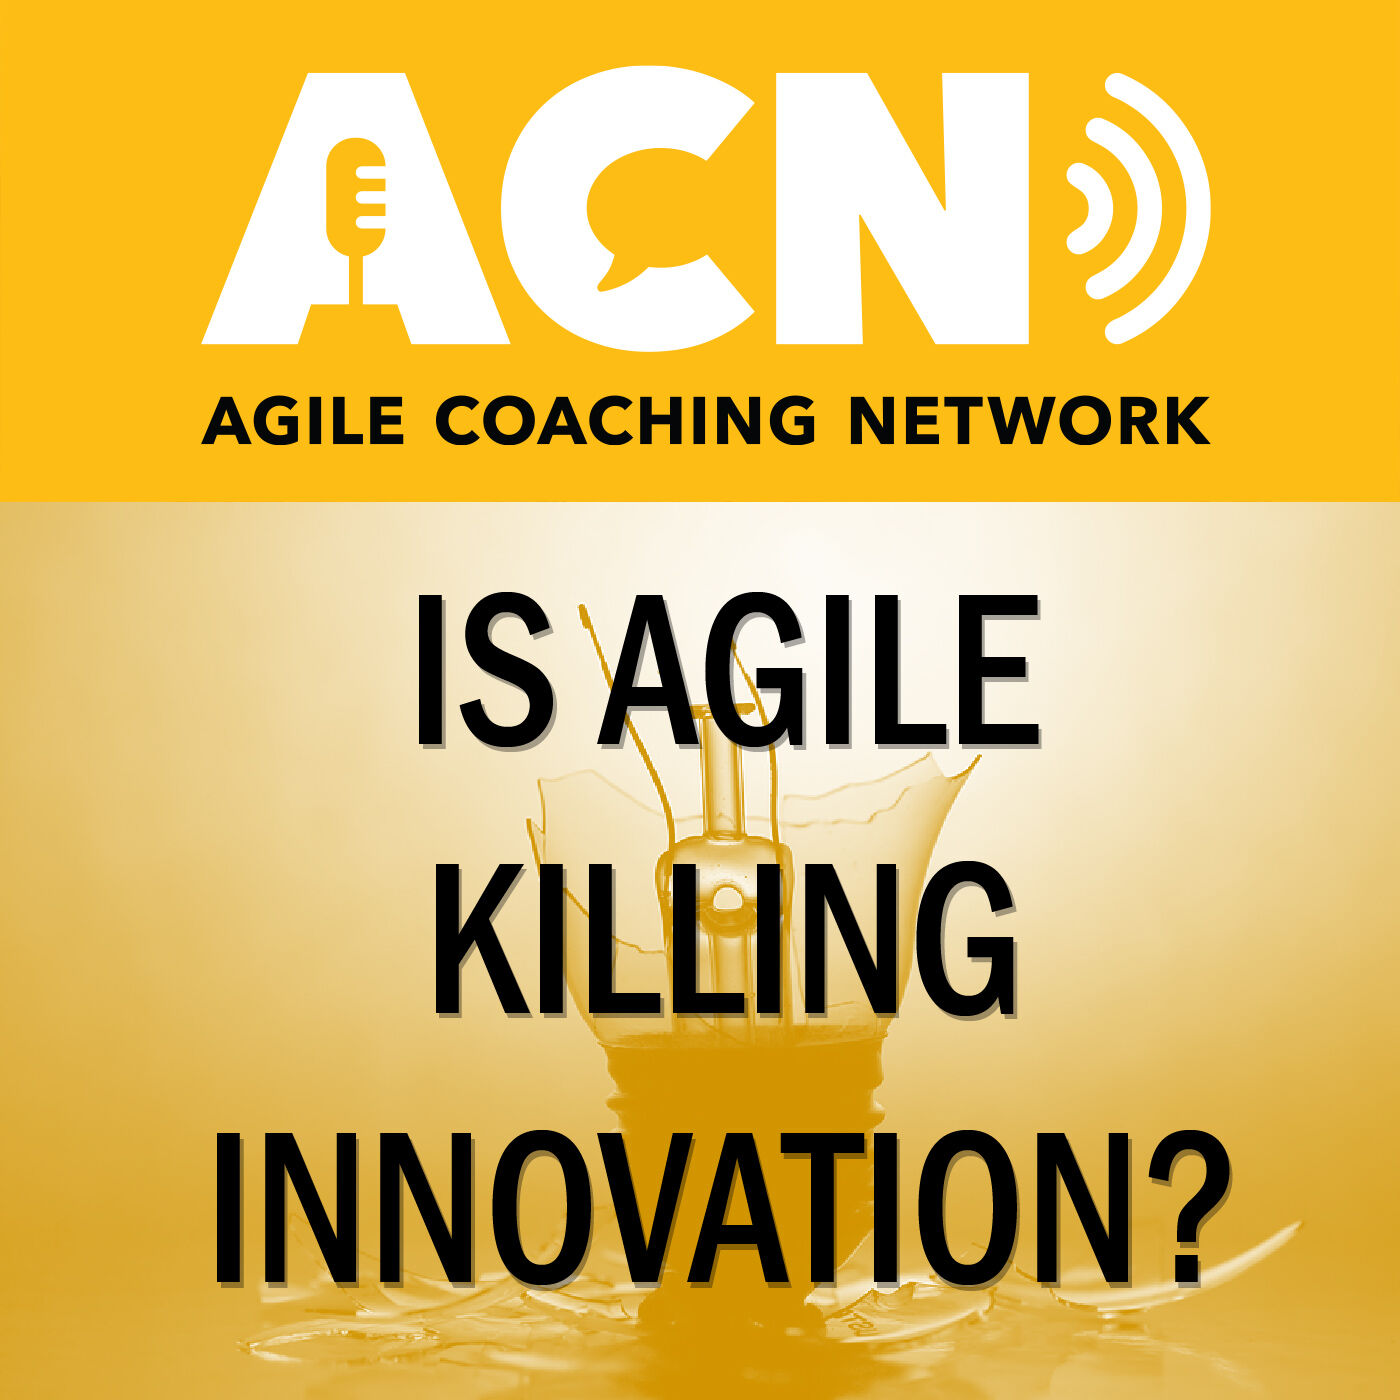 Is Agile killing or helping innovation, do cycle time metrics add value, building cohesive teams, what success has happened with Agile in K-12 education, and what people are reading